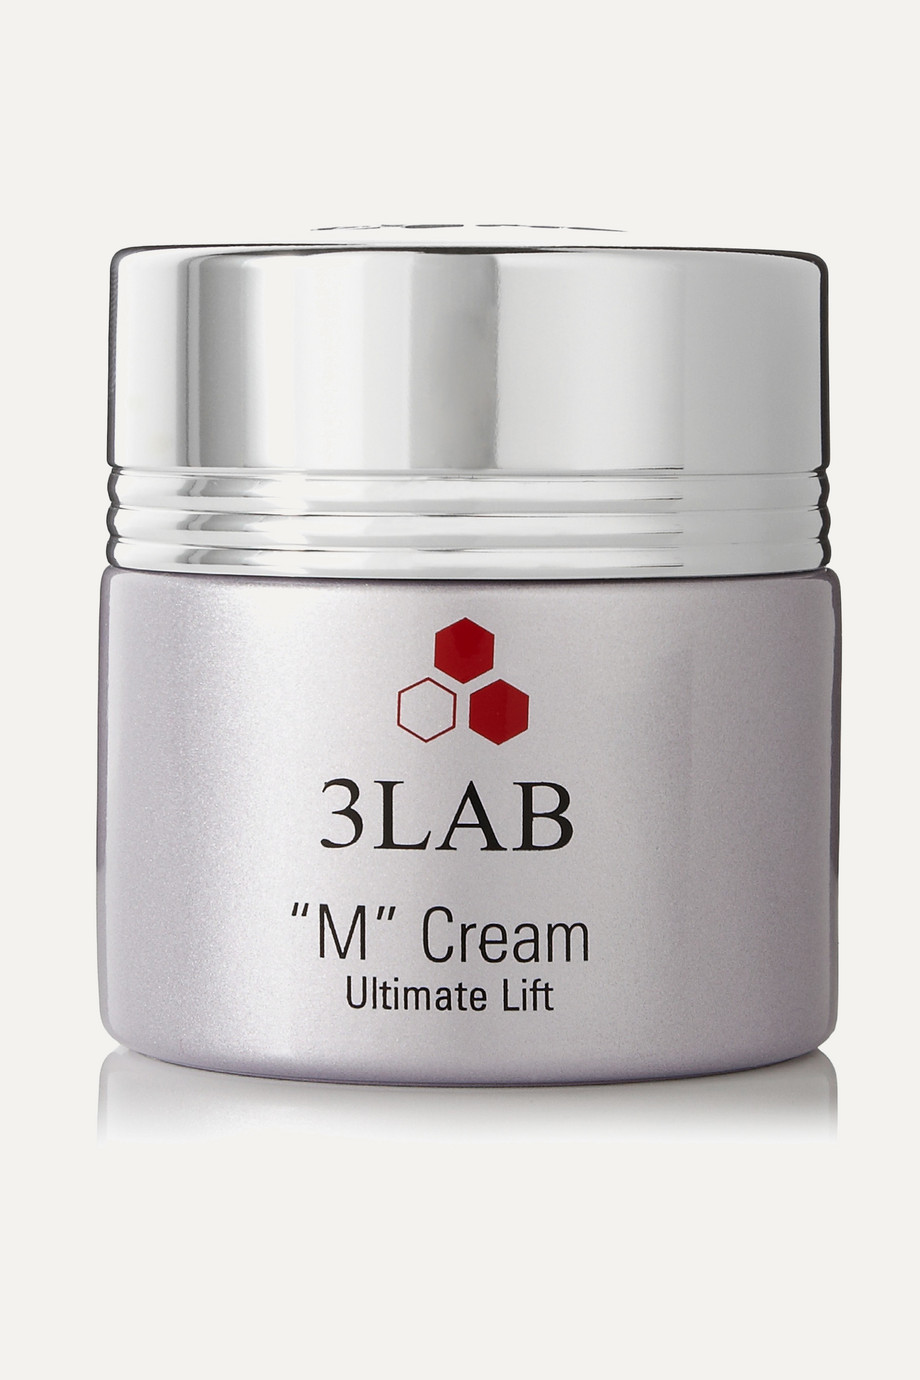 3LAB M Cream Ultimate Lift, 60ml – Anti-Aging-Creme